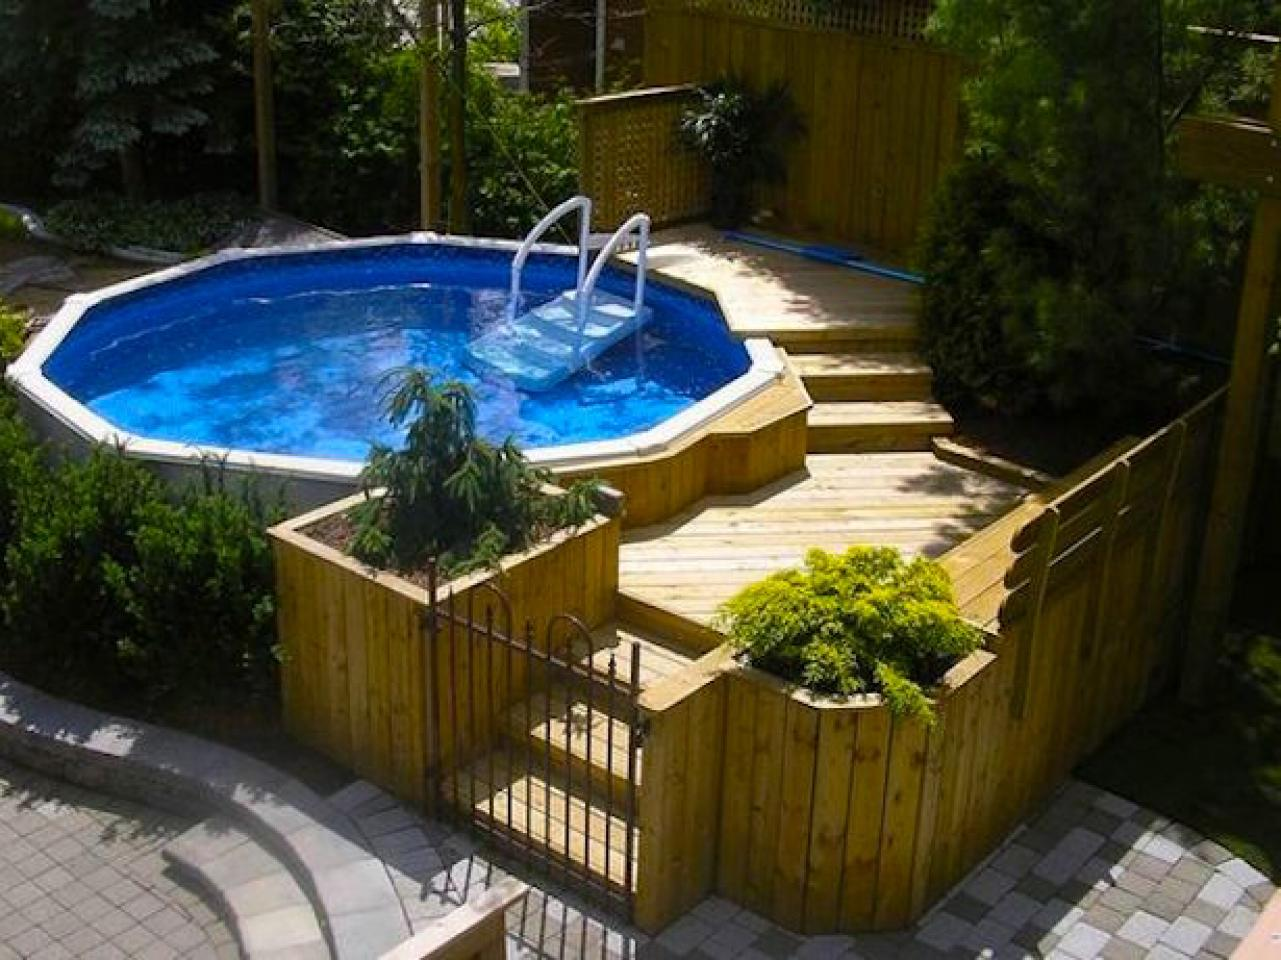 17 Ways to Add Style to an Above-Ground Pool | HGTV's